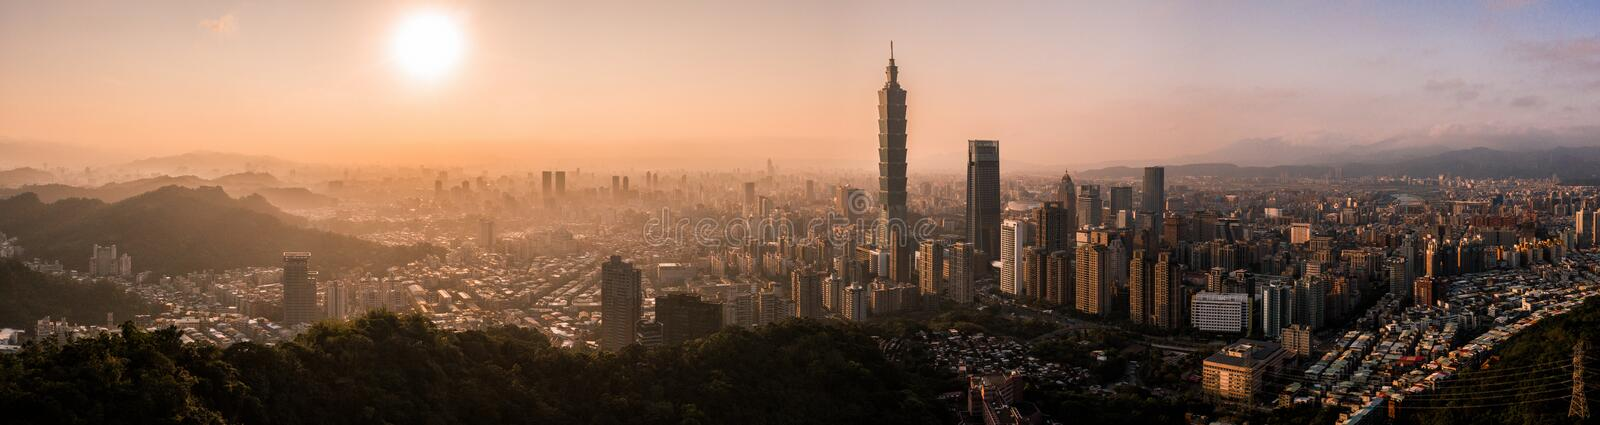 Aerial drone photo - Sunset over Taipei skyline. Taiwan. Taipei 101 skyscraper featured. royalty free stock photos